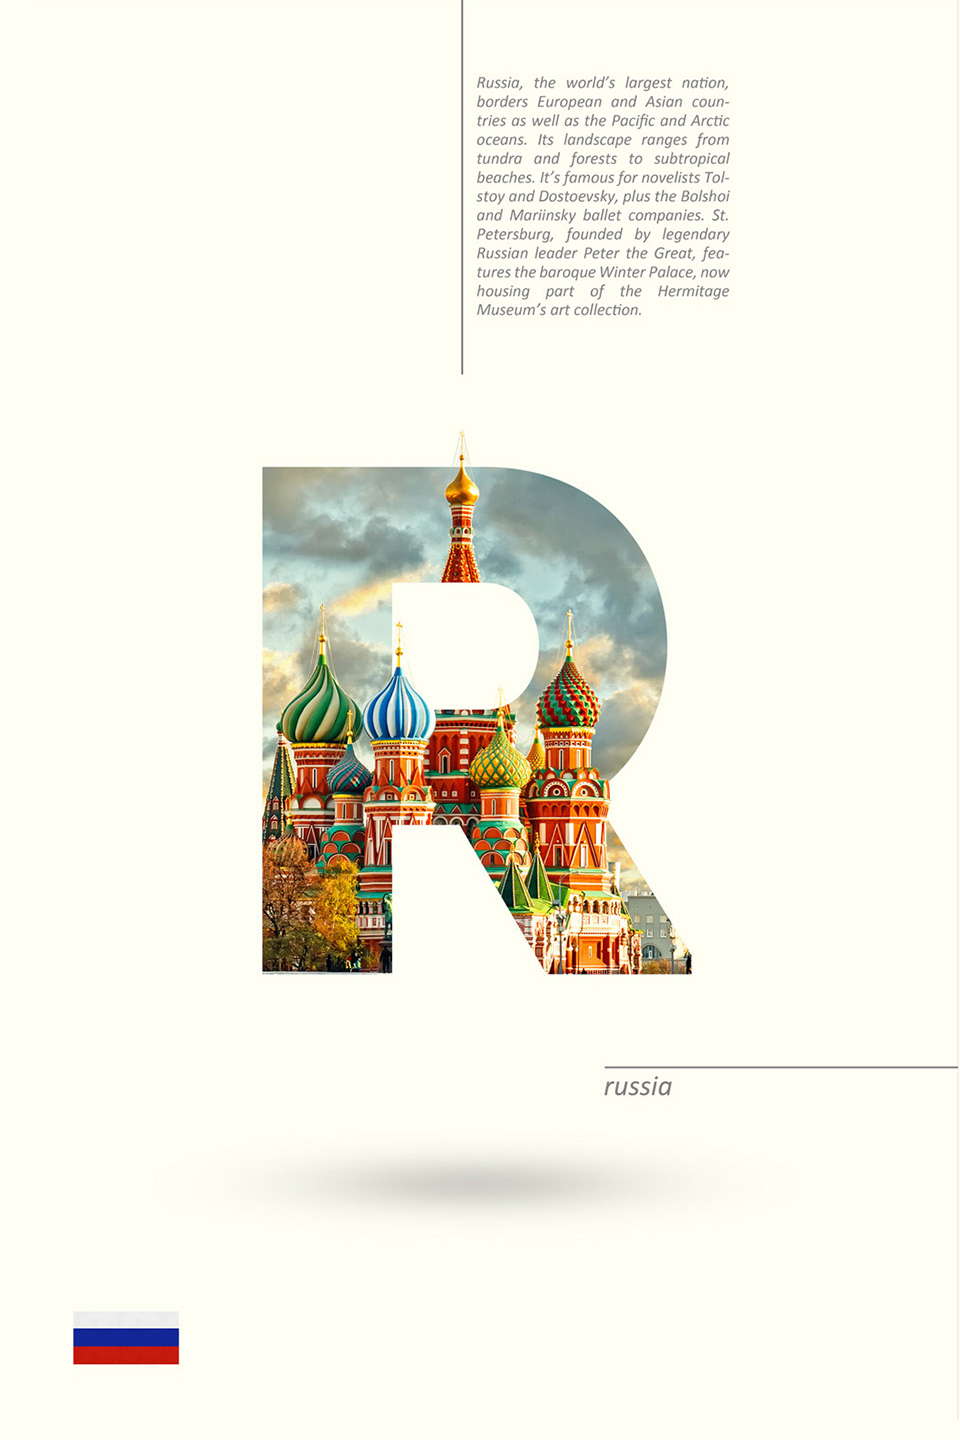 Beautiful Alphabet Series Of Countries And Their Iconic Landmarks - Russia